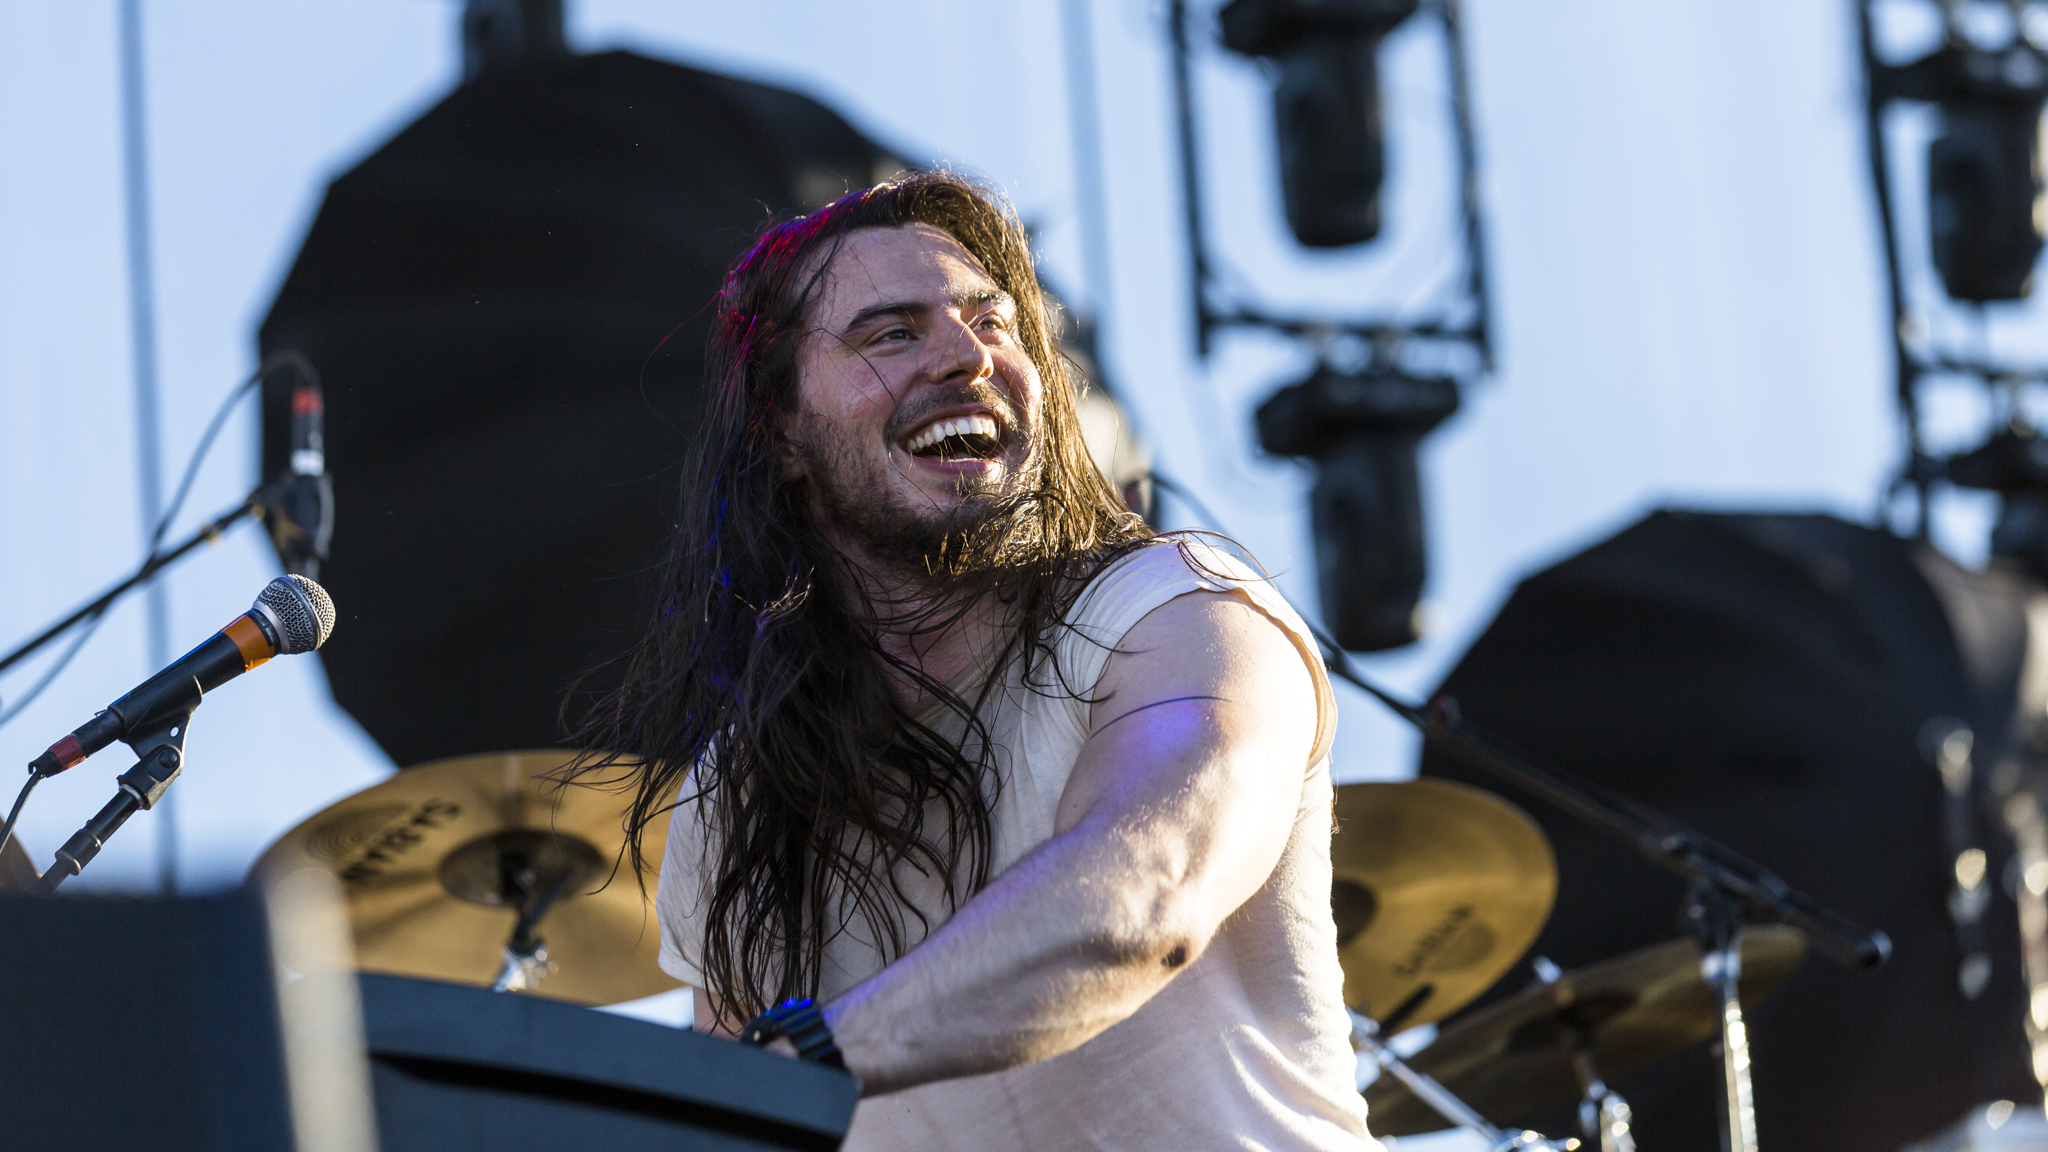 Andrew W.K. turned in a set on the final day of Riot Fest, September 13, 2015.